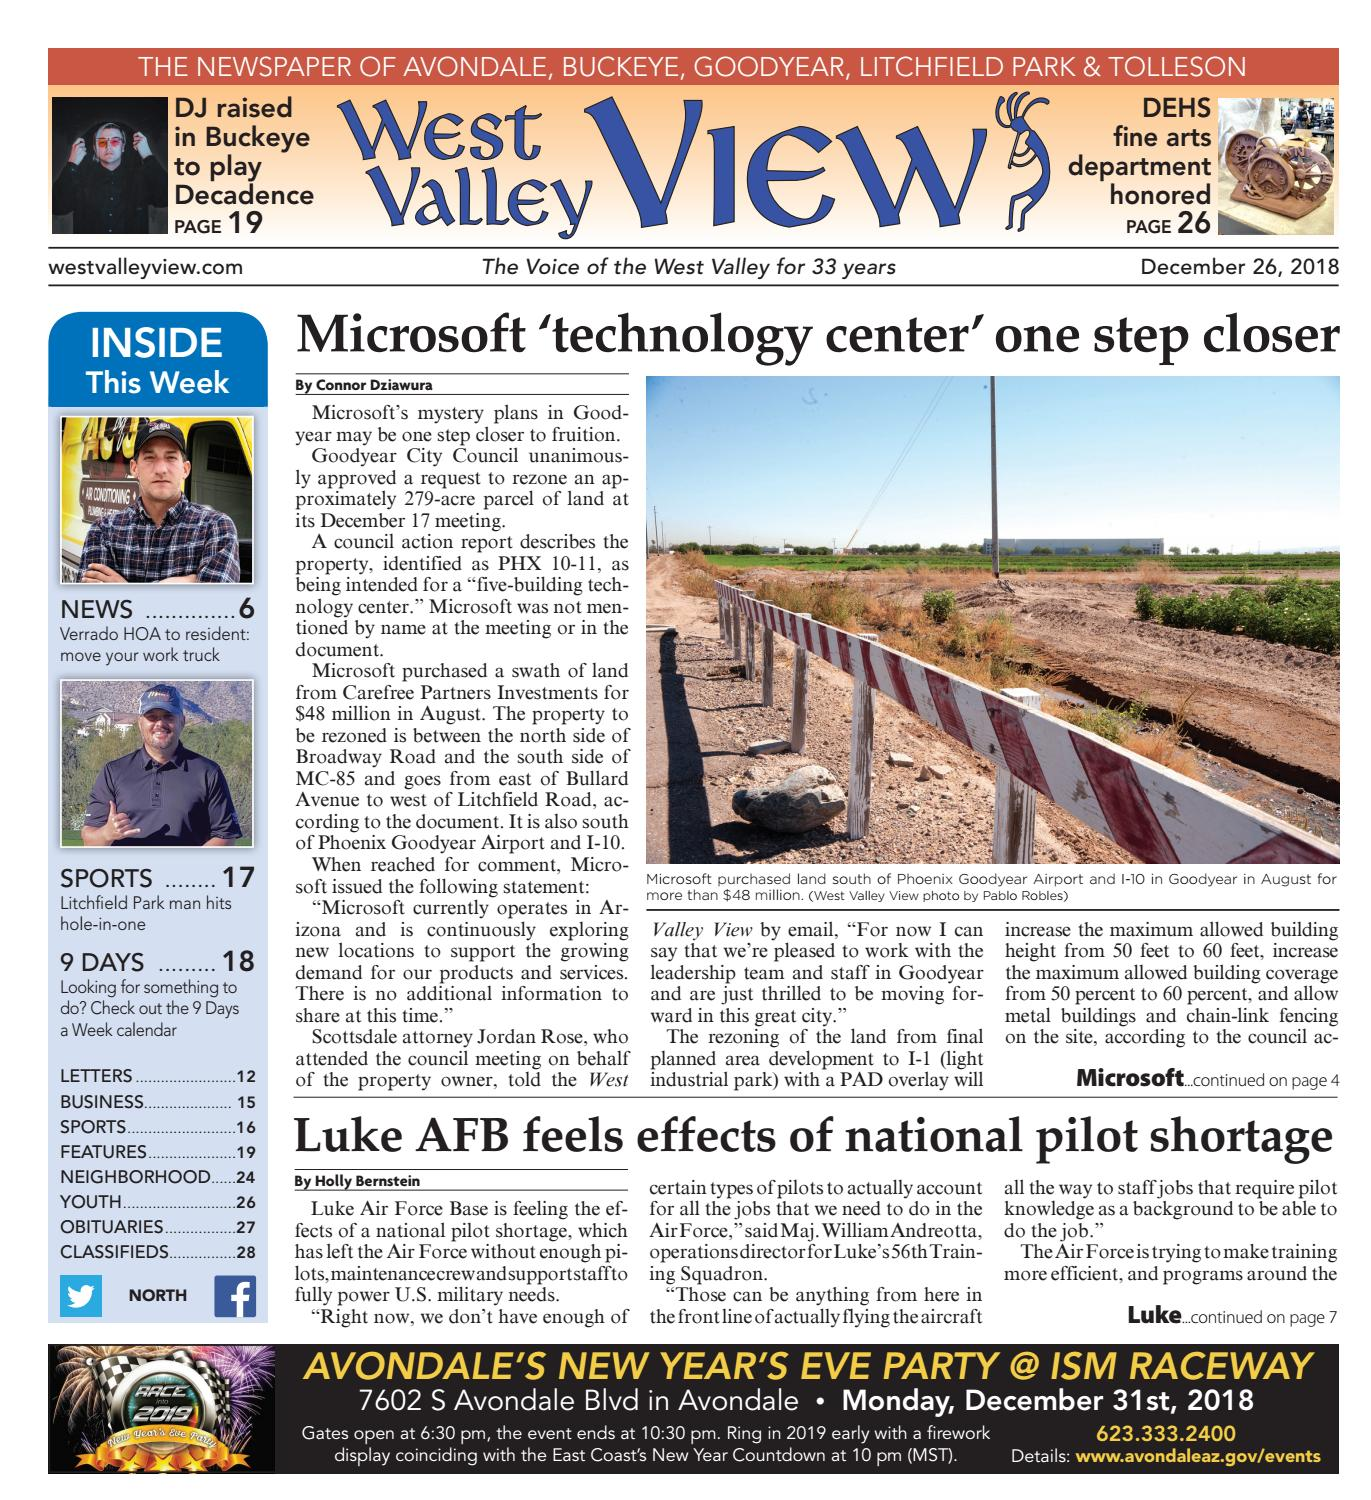 a5c671ec70 West Valley View: North December 26, 2018 by Times Media Group - issuu